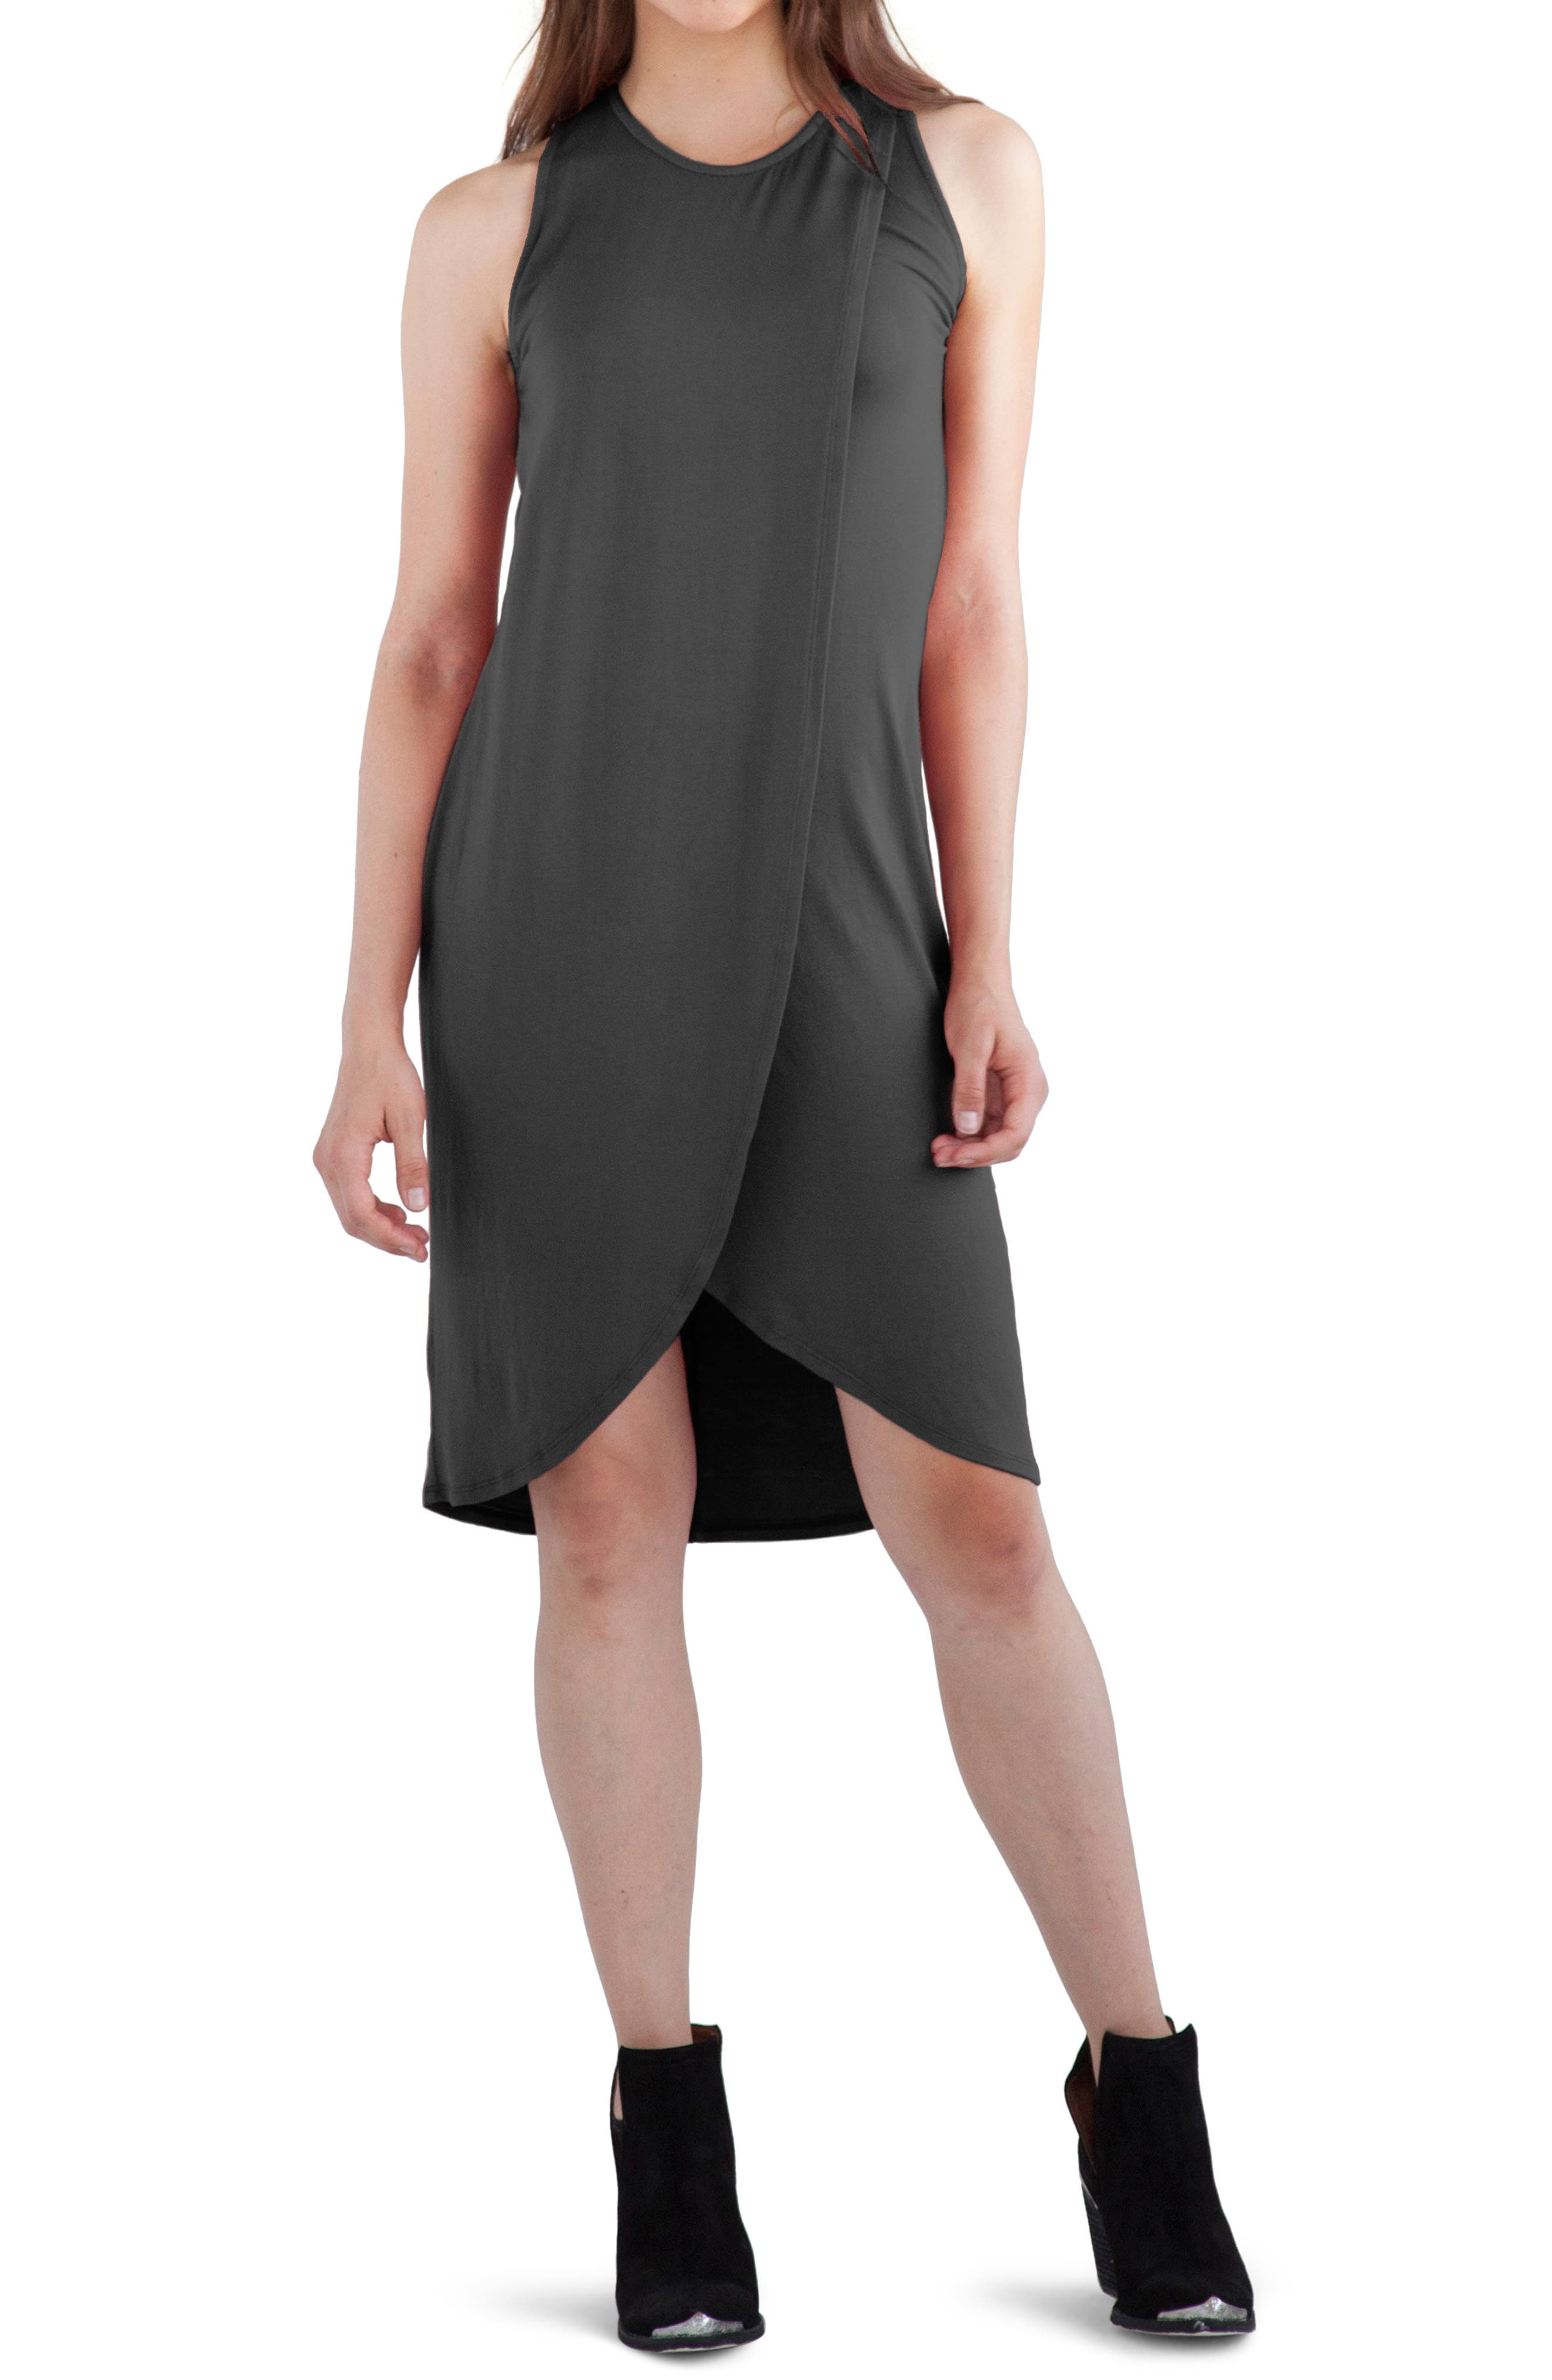 LAmade 'Elba' Asymmetrical Hem Sleeveless Jersey Dress